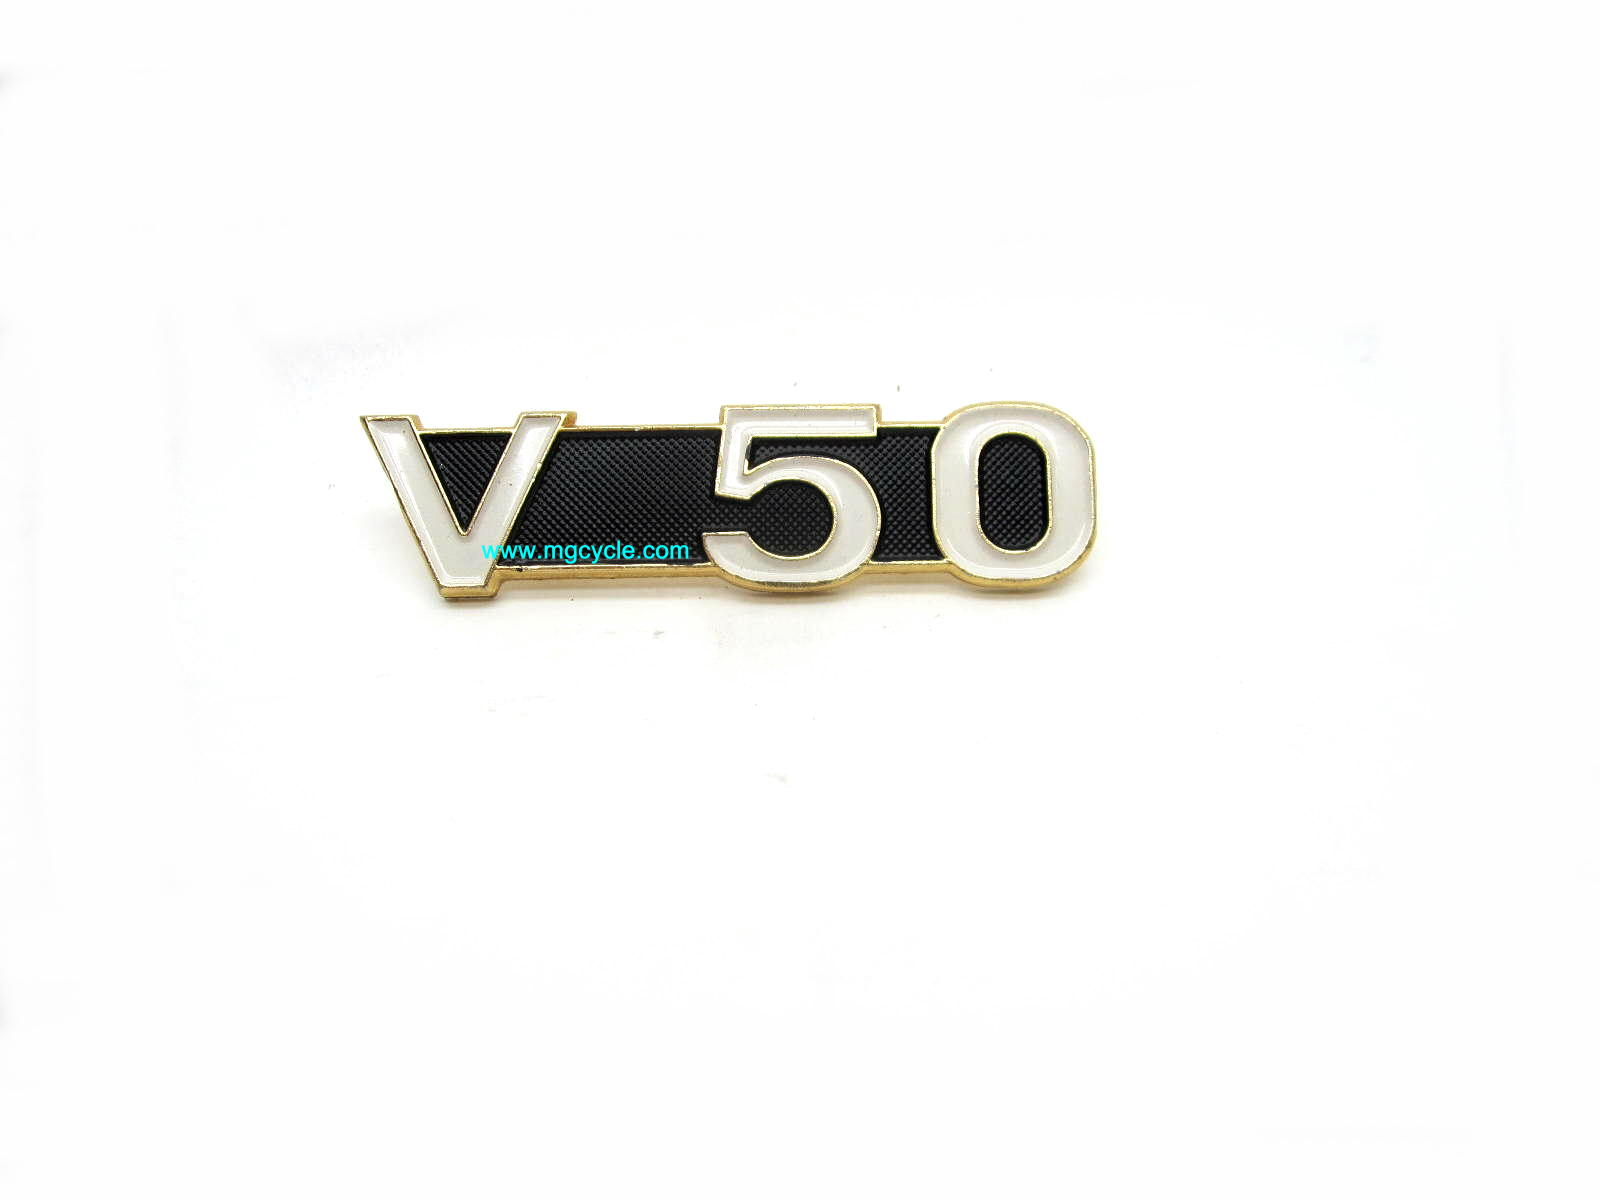 emblem V50 for side cover